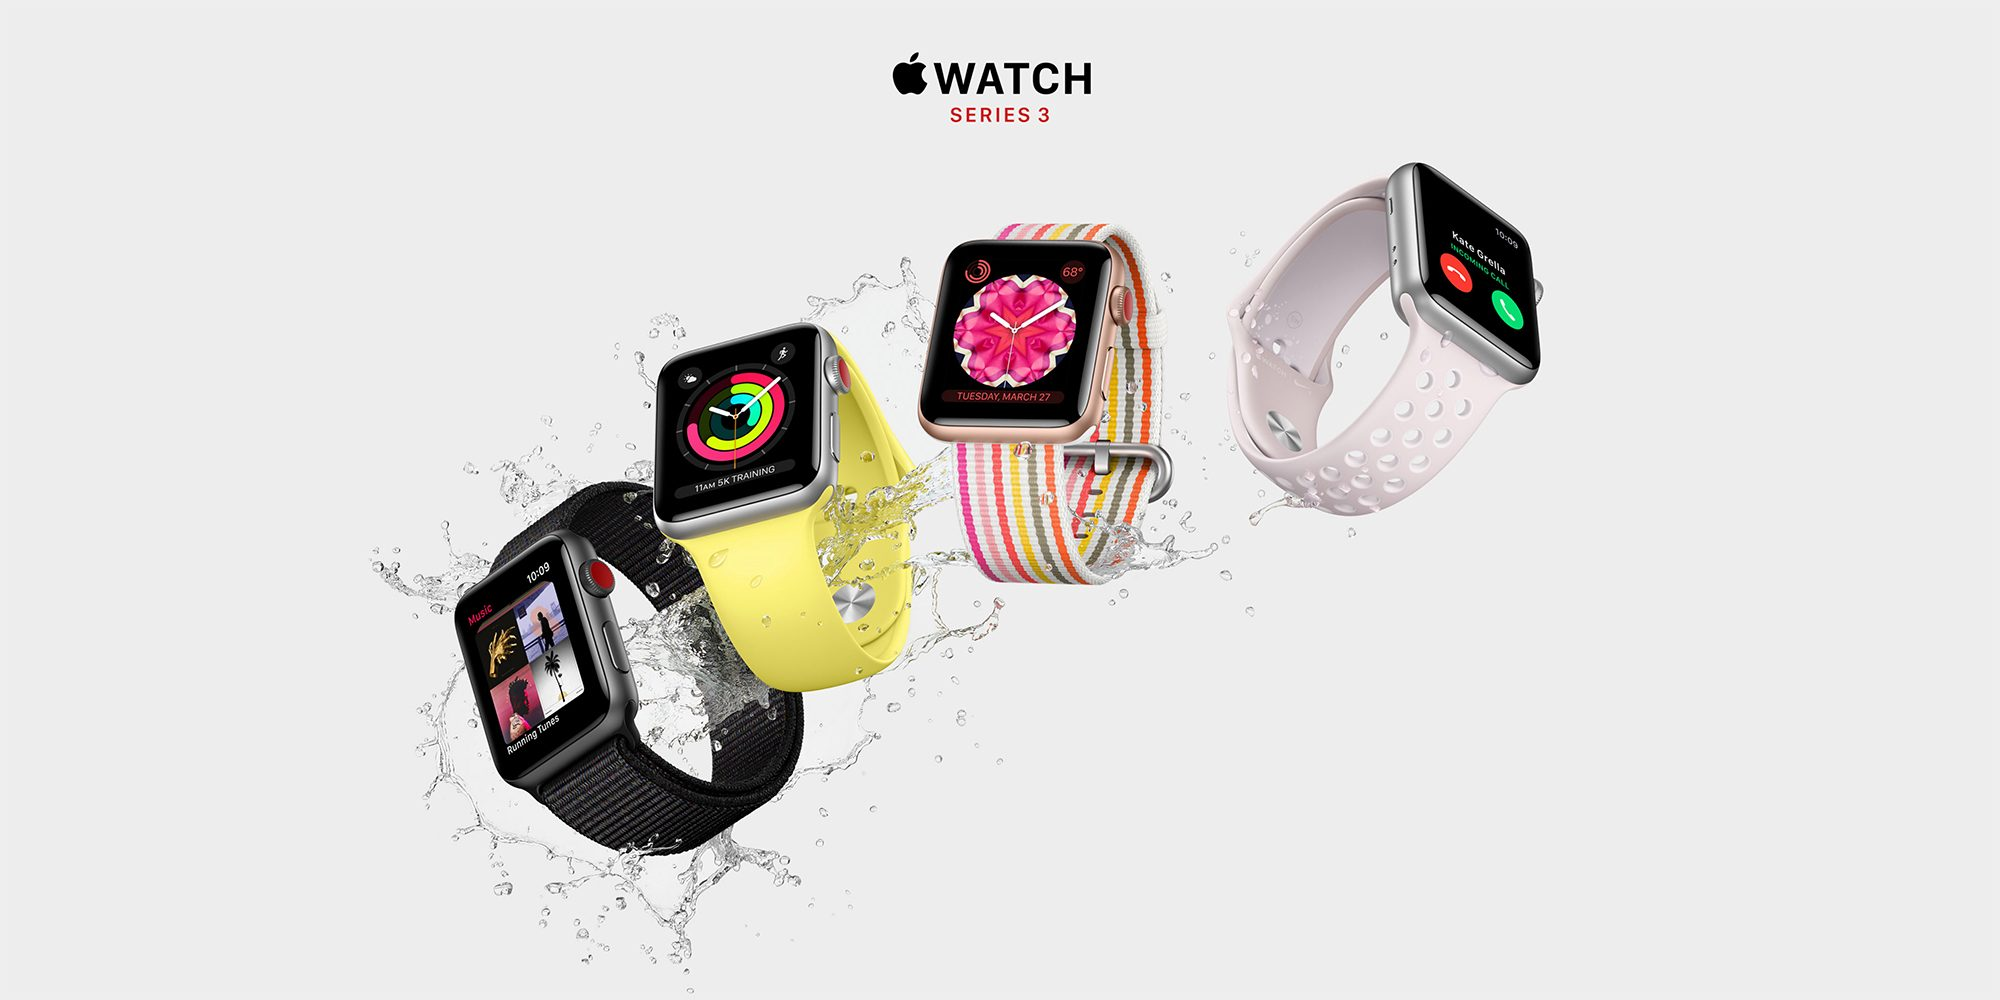 Apple Watch Series 3 LTE models discounted by 20% at Best Buy, today only (Cert. Refurb)